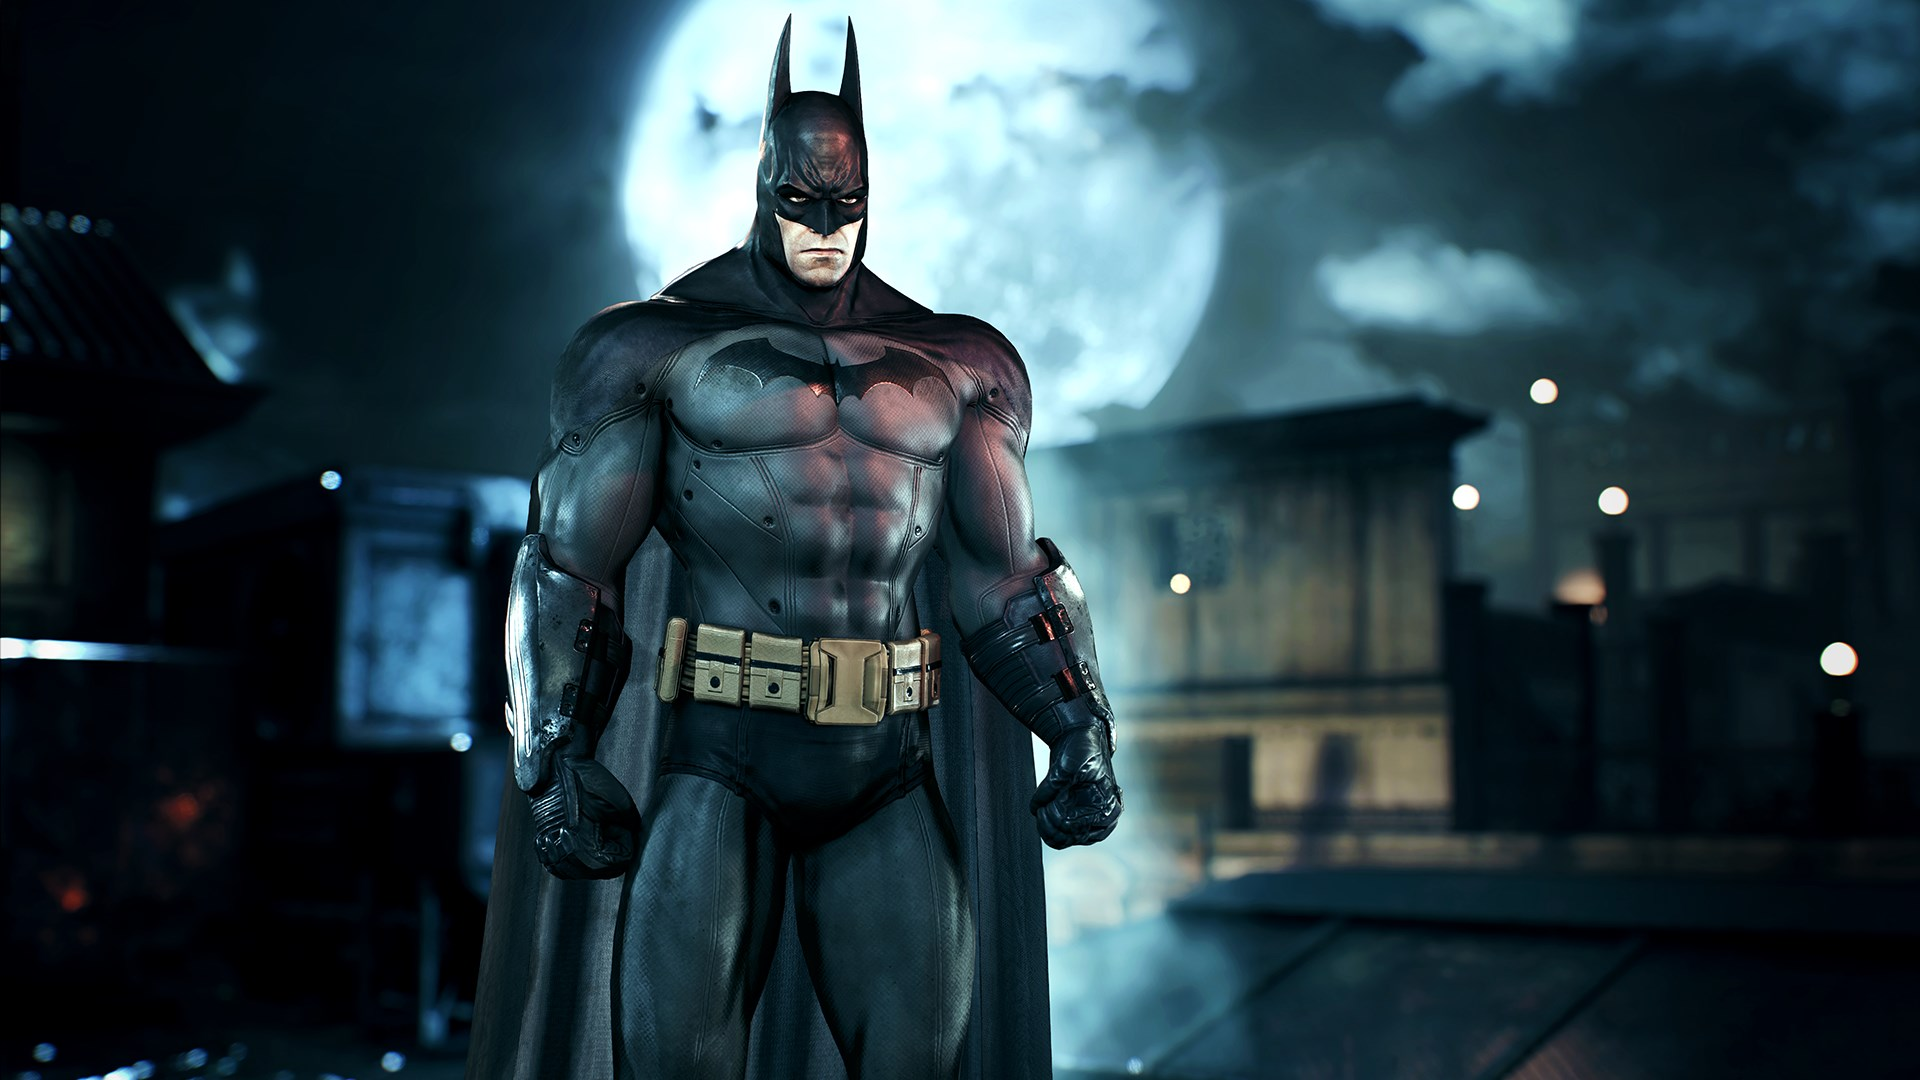 Original Arkham Batman Skin